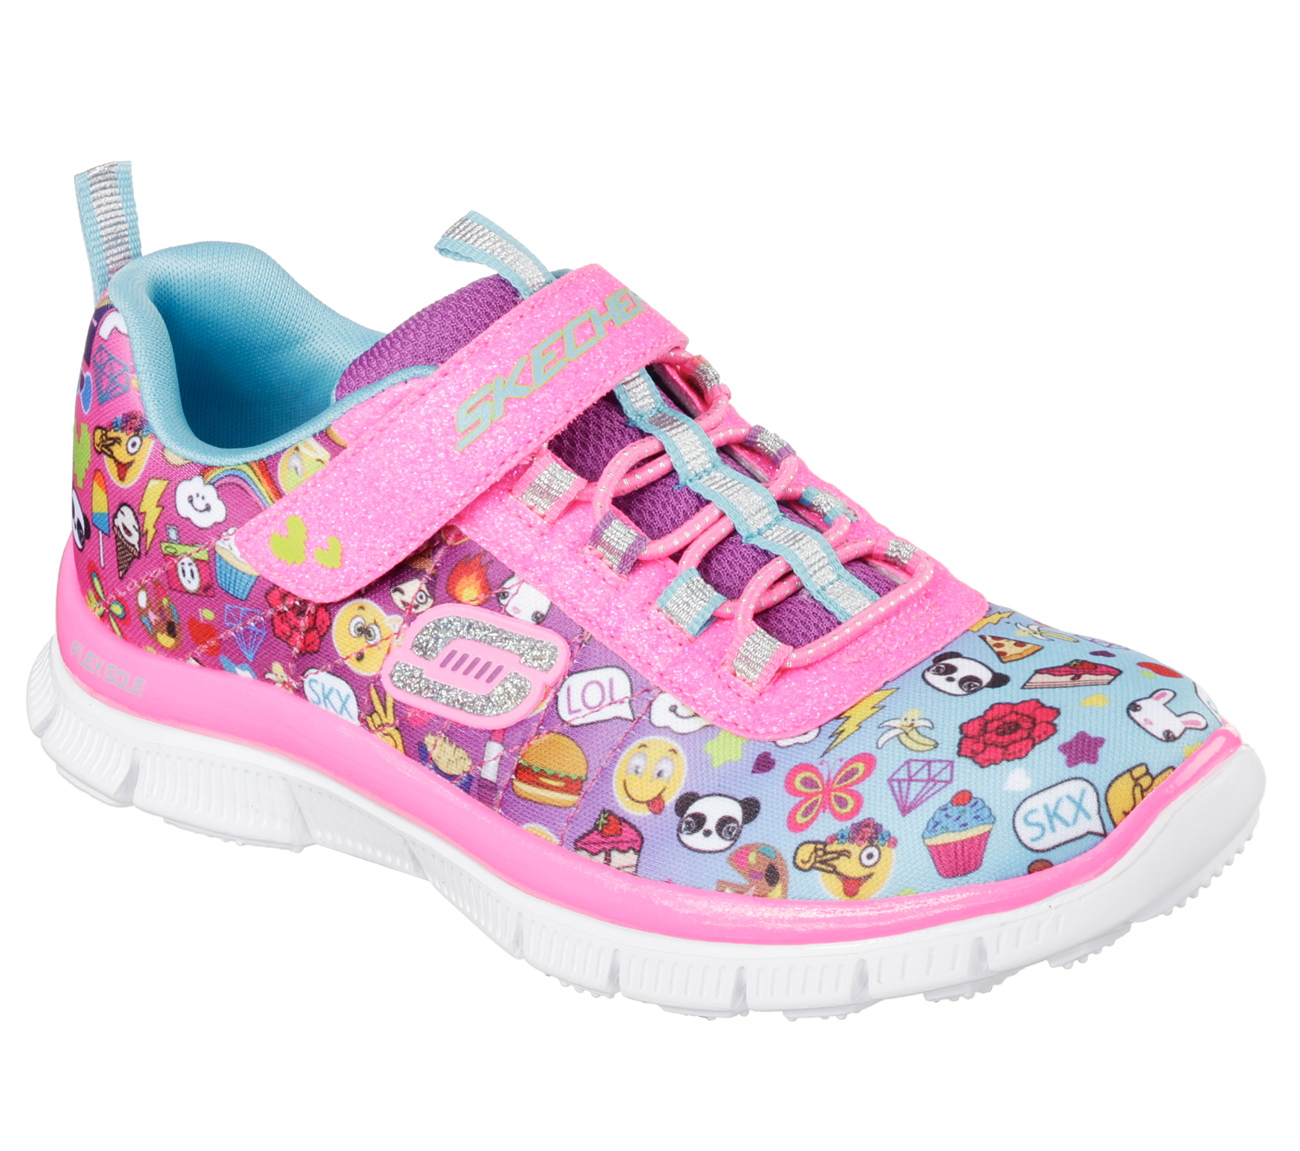 Buy Skechers Skech Appeal Pixel Princess Sport Shoes